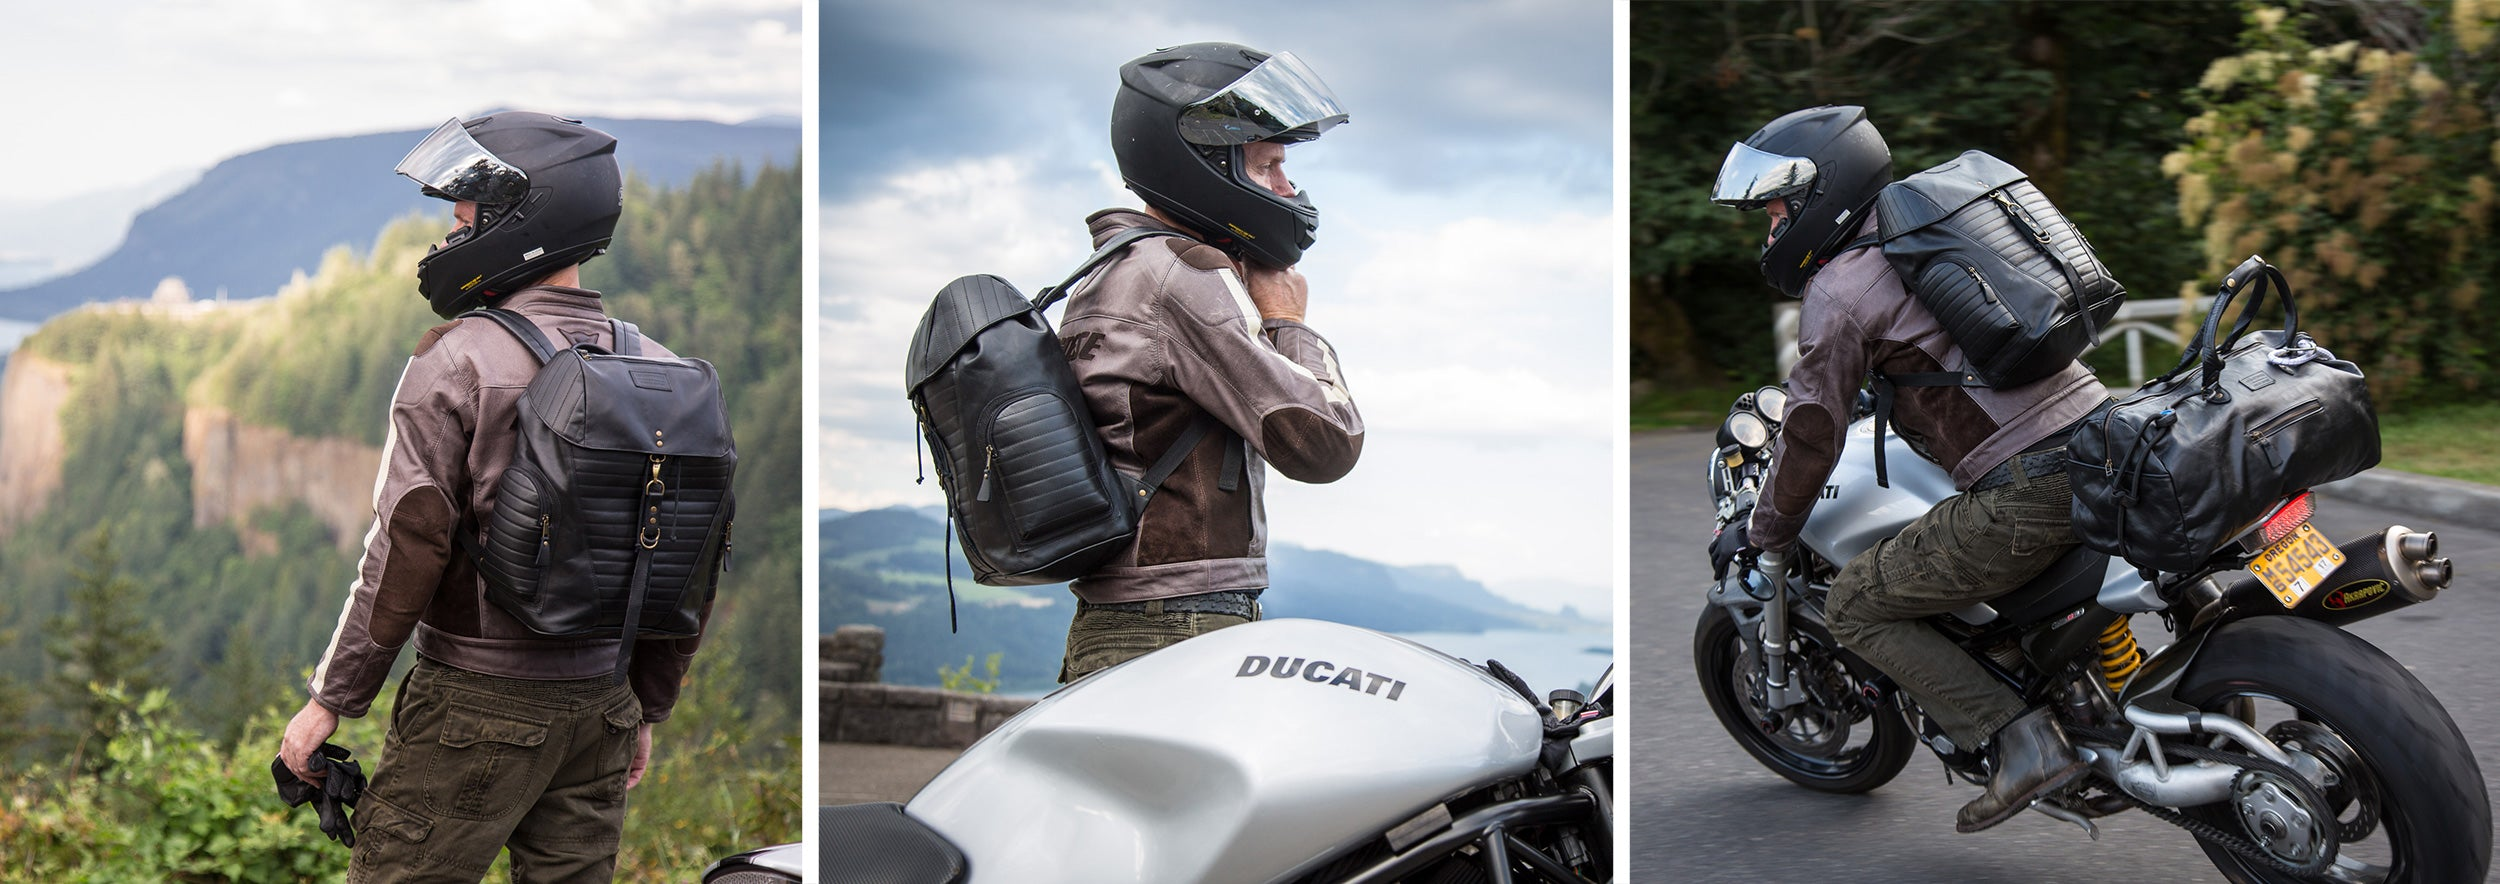 riding with the moto backpack